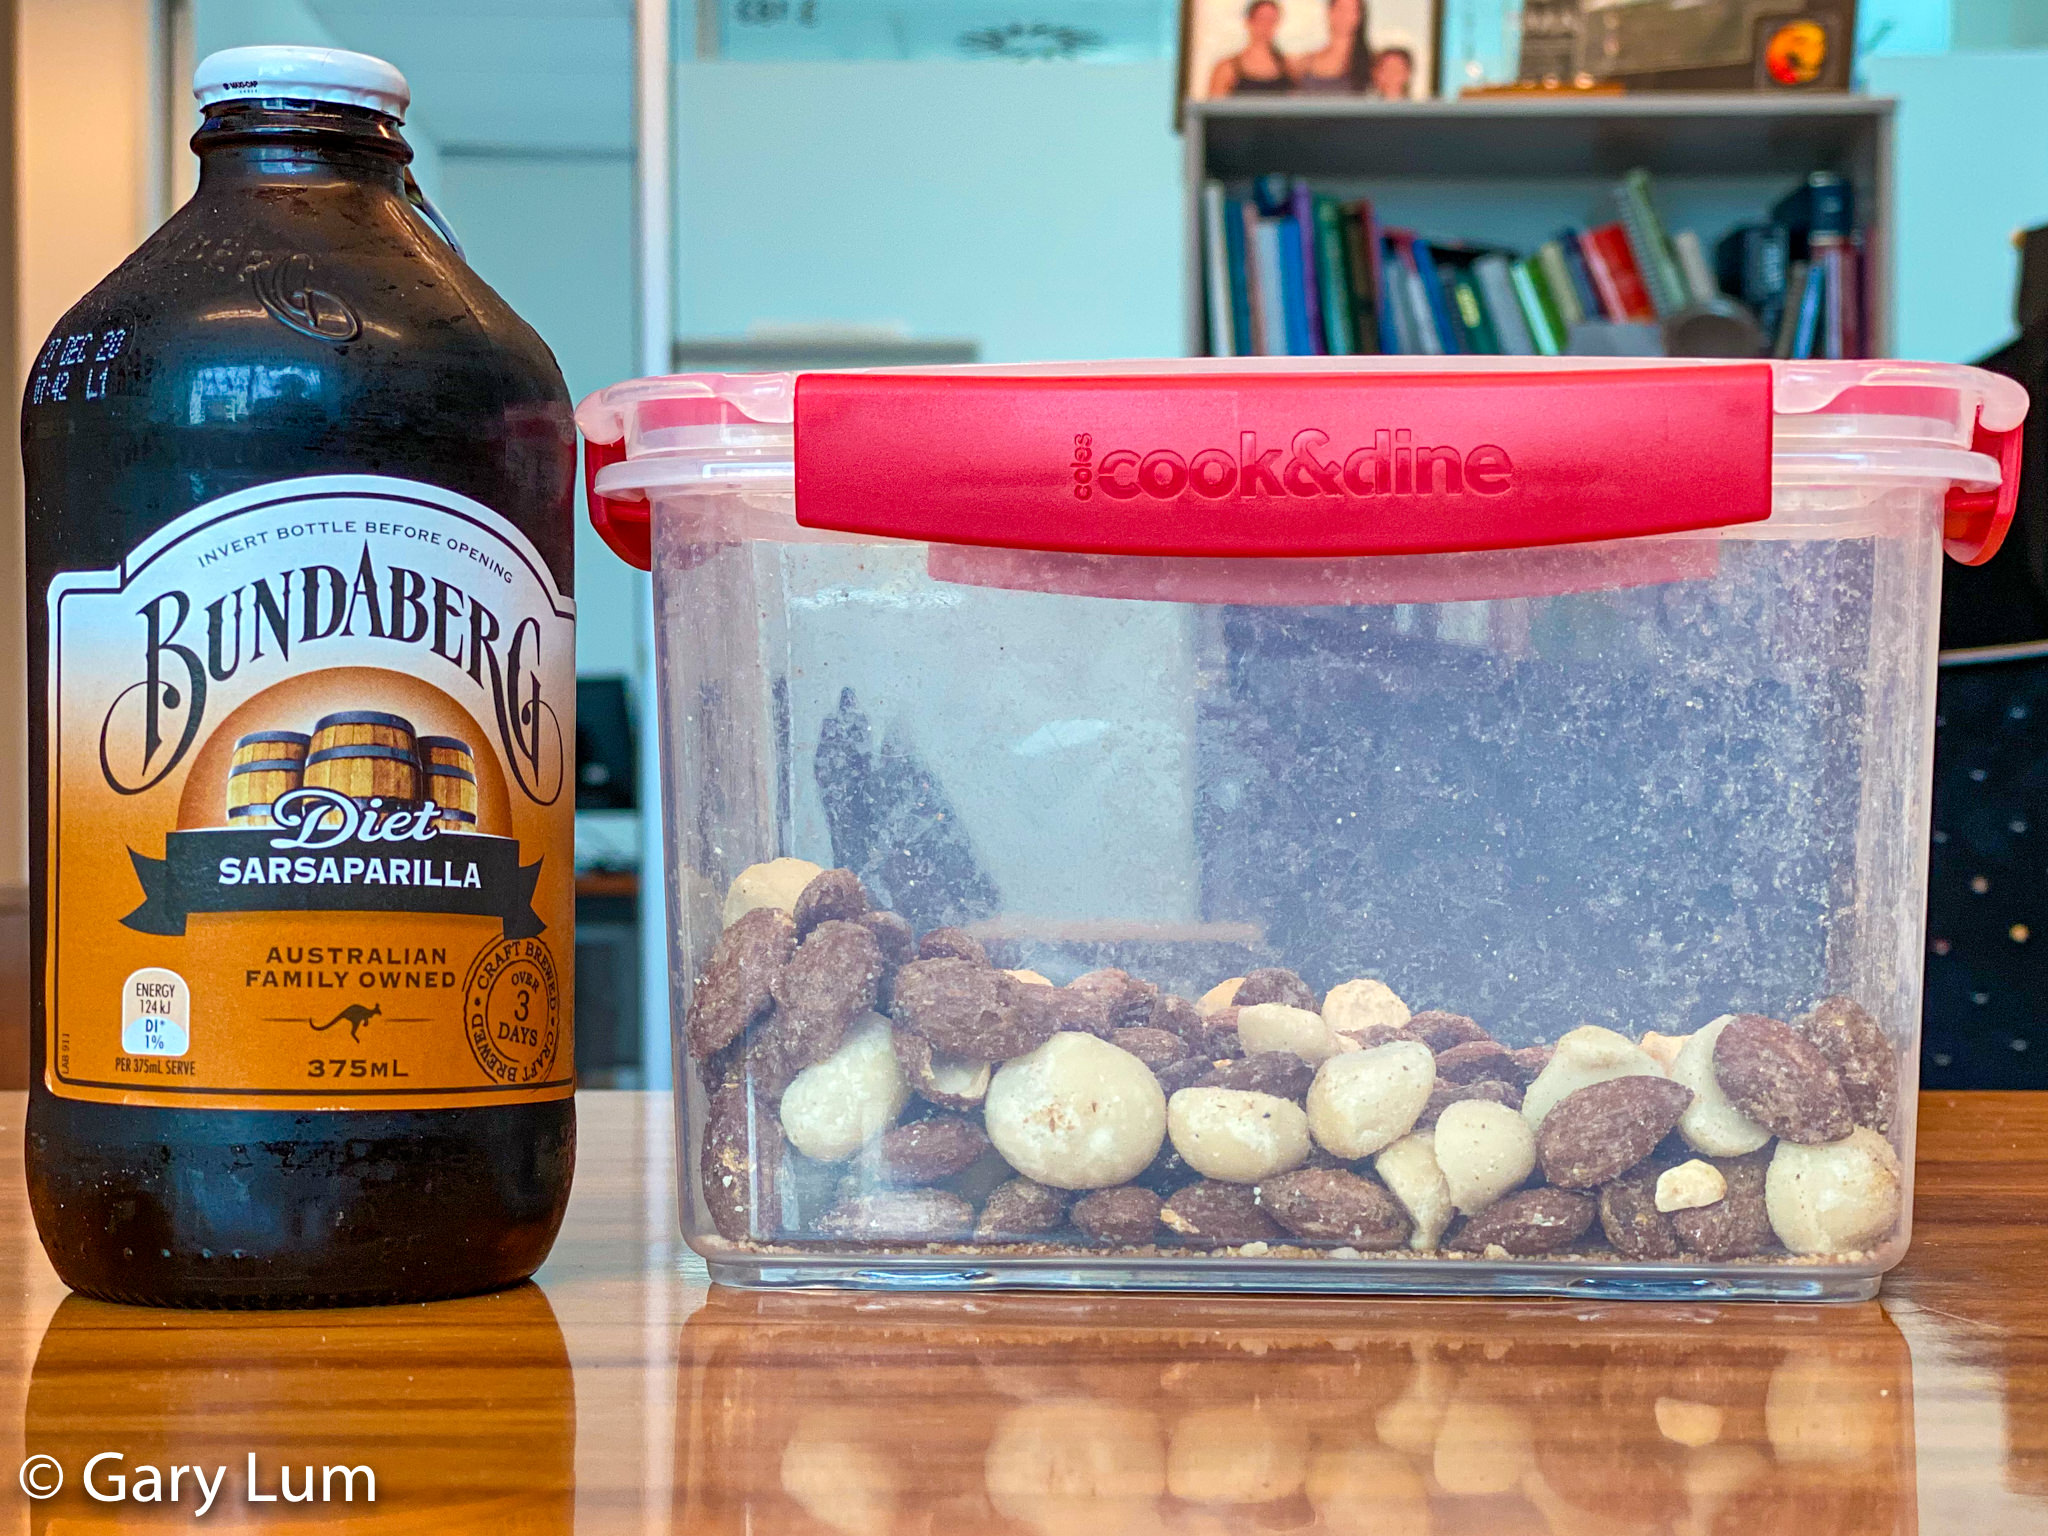 Sunday lunch at work. Bundaberg Sarsaparilla with Queensland nuts and Smokey almonds. Gary Lum.